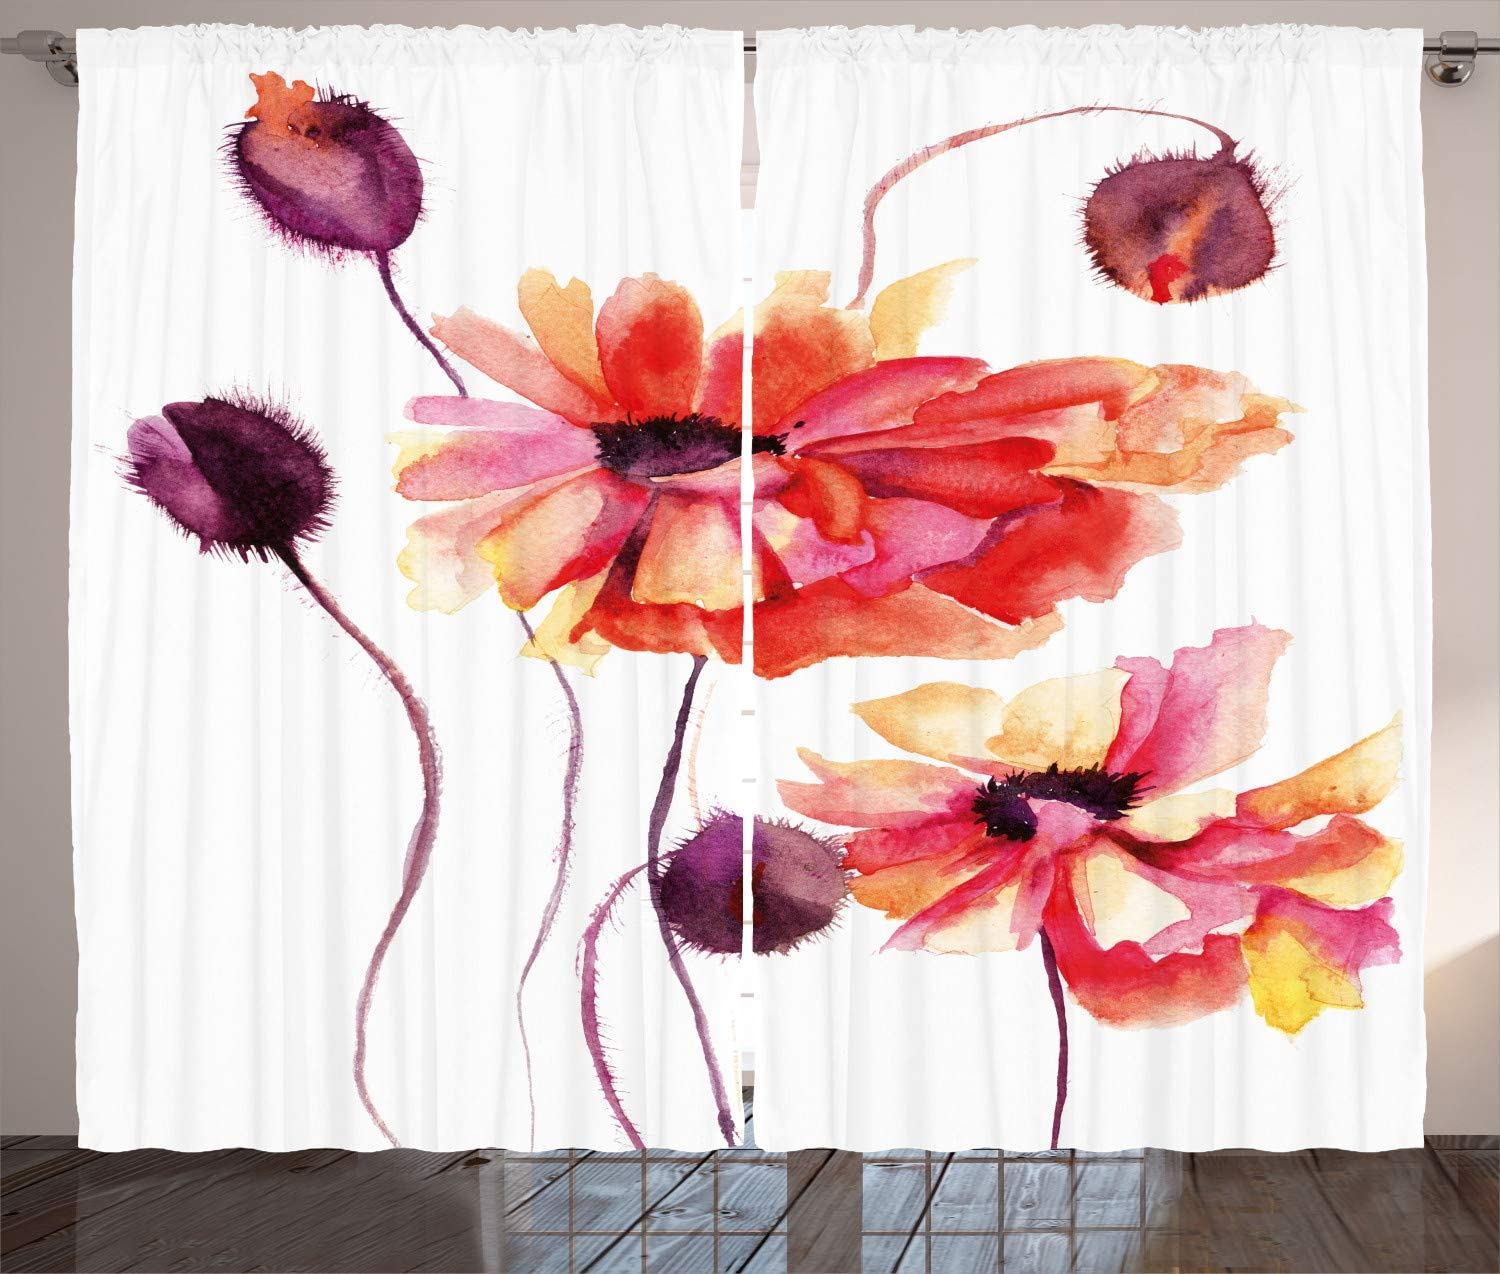 "Ambesonne Floral Curtains, Watercolor Painting Poppy Flowers and Buds Spring Nature Design, Living Room Bedroom Window Drapes 2 Panel Set, 108"" X 90"", Dark Brown"